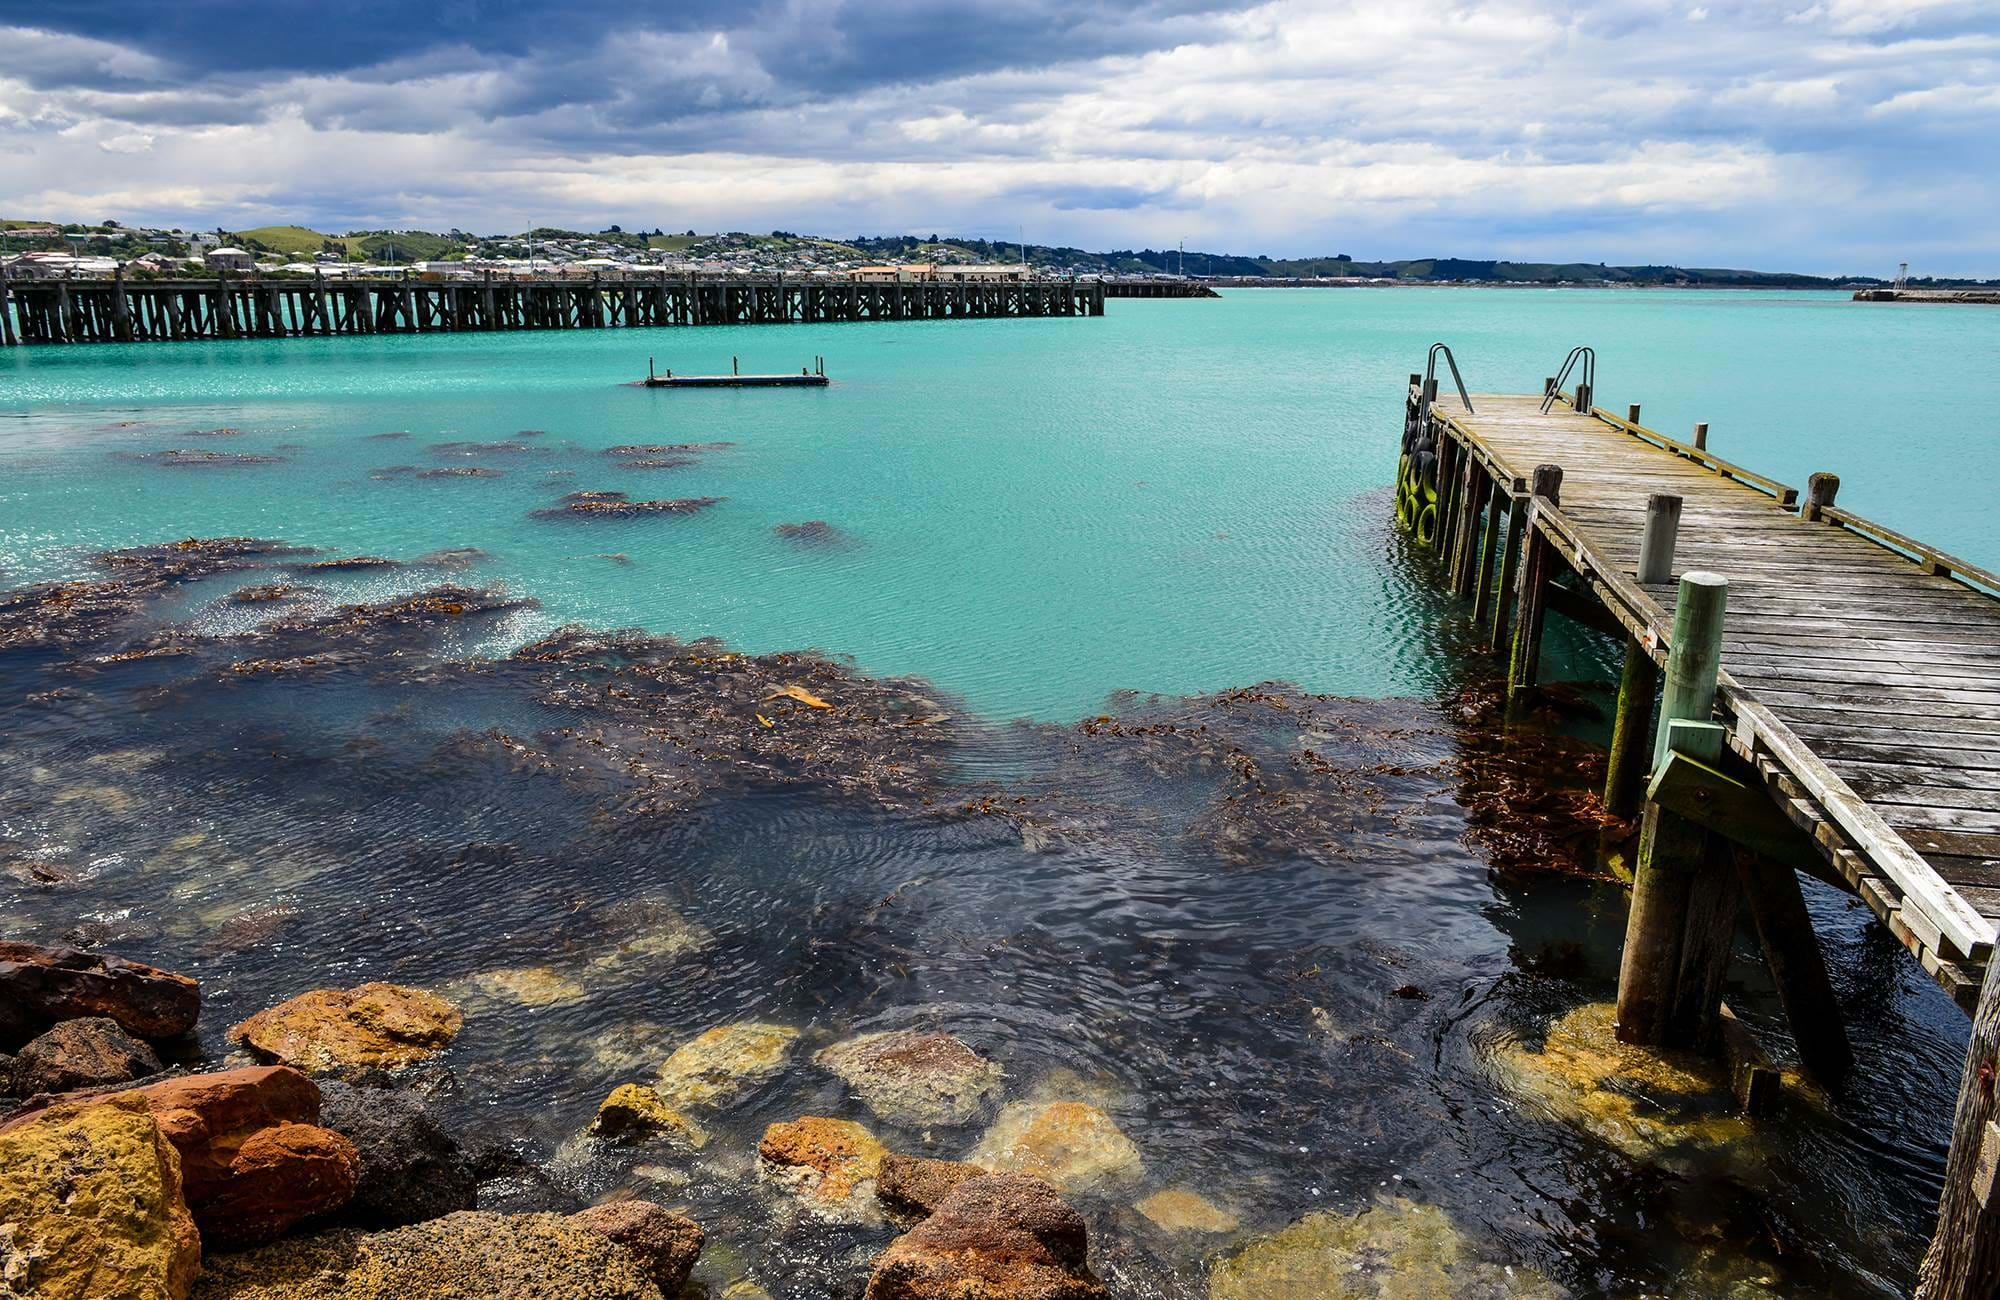 Oamaru Harbor in New Zealand